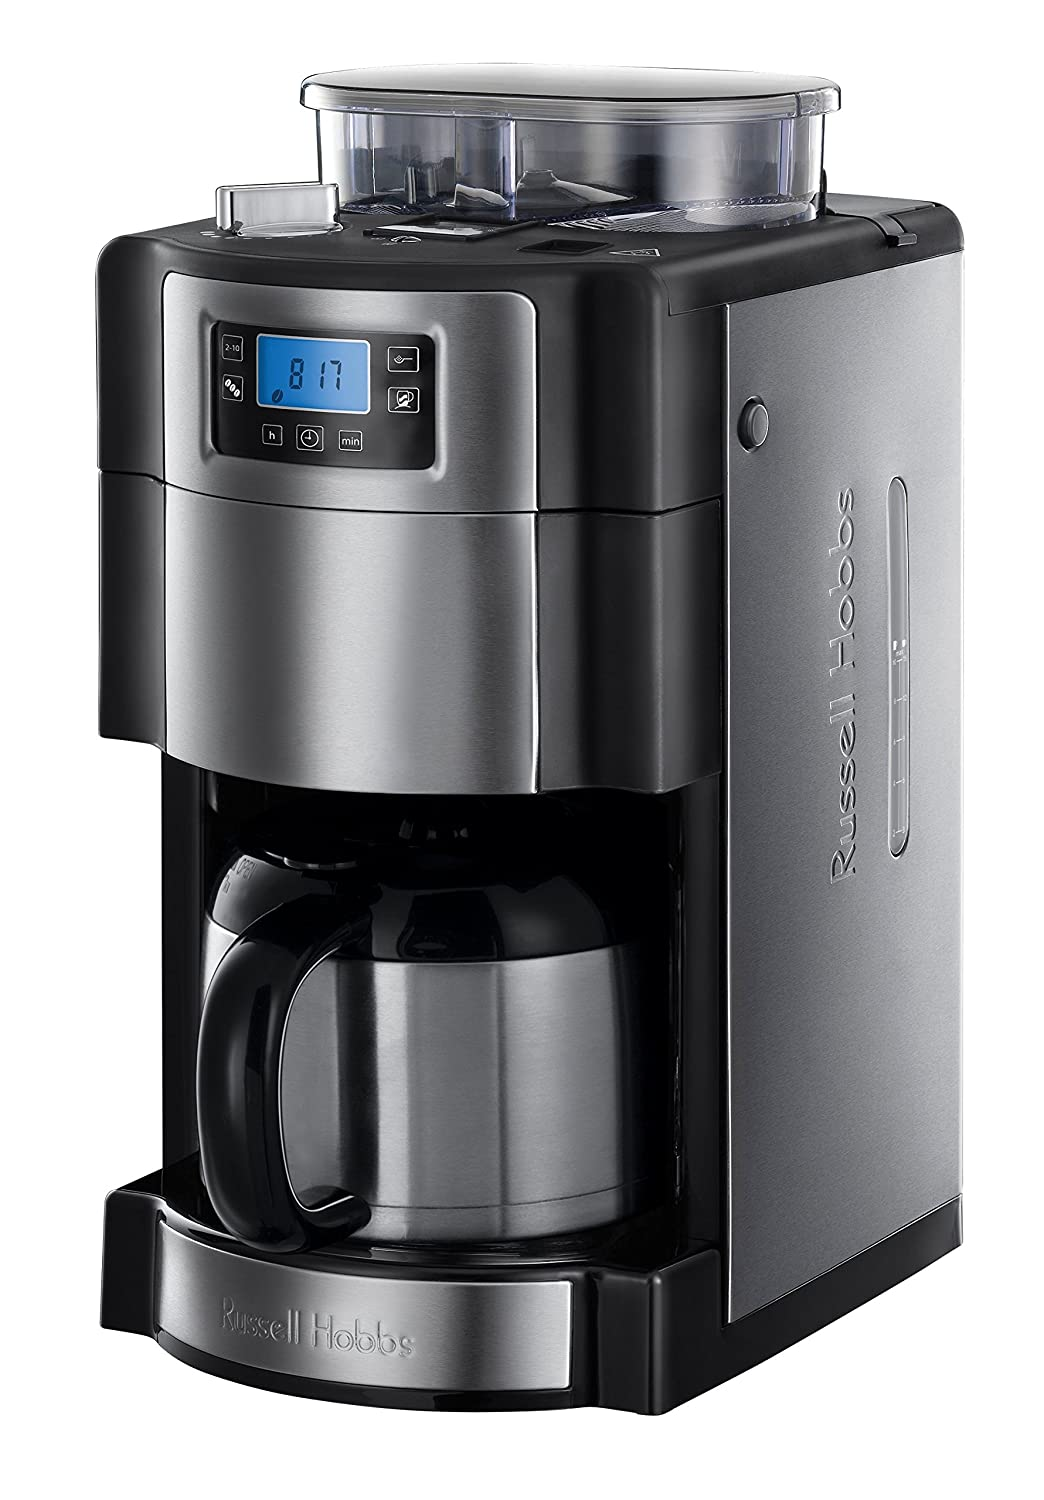 russell hobbs 21430 56 cafeti re filtre semi automatique avec moulin caf ebay. Black Bedroom Furniture Sets. Home Design Ideas